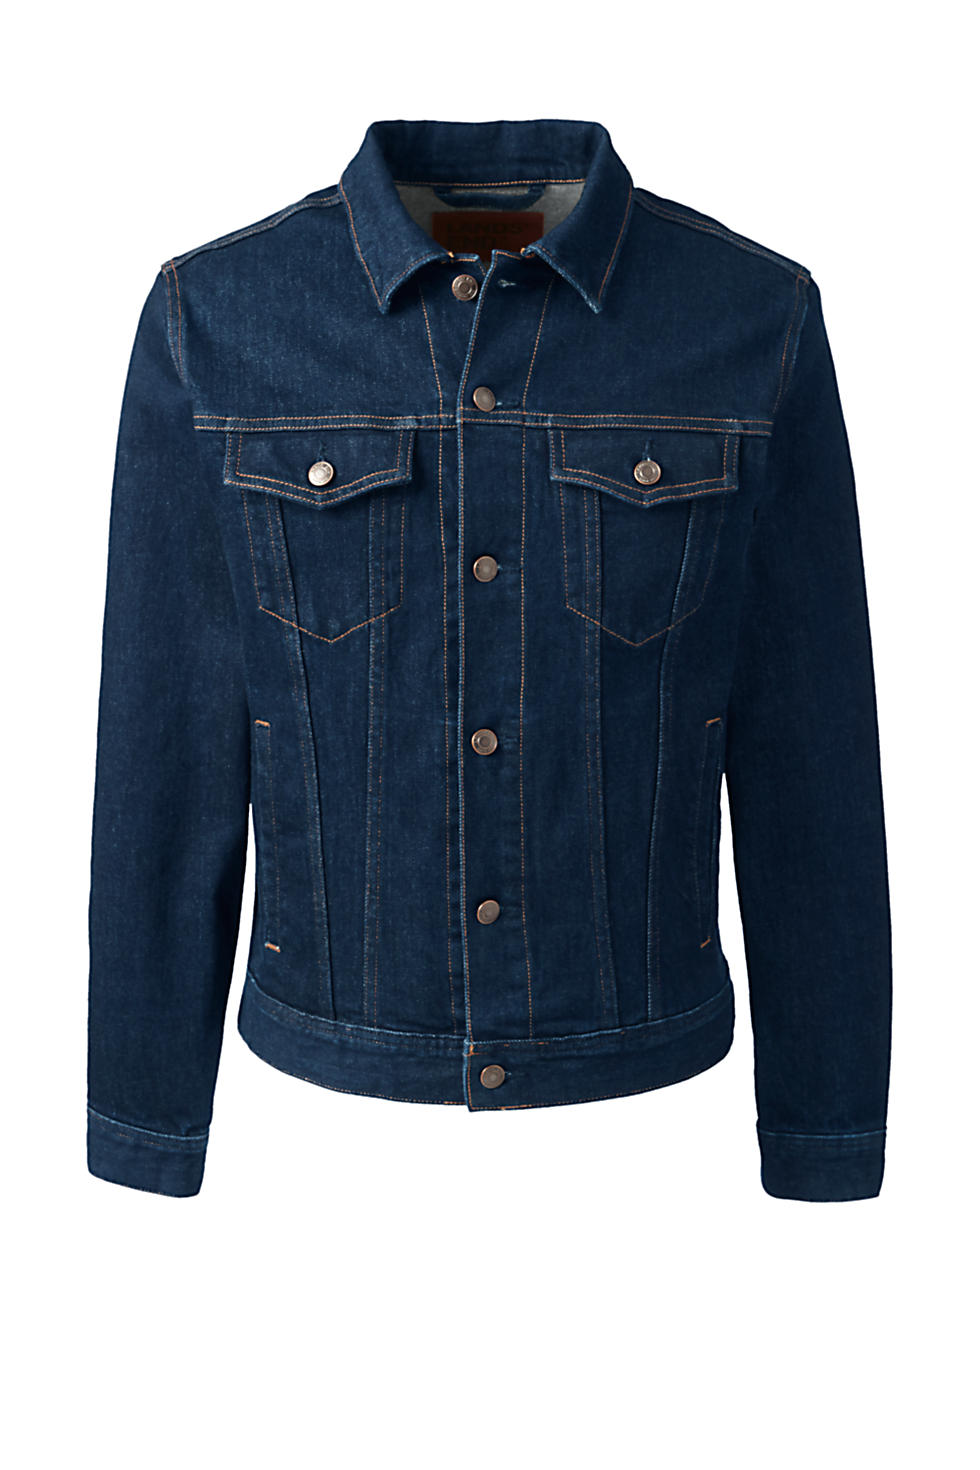 Lands End Mens Comfort First Denim Trucker Jacket (Rinse)